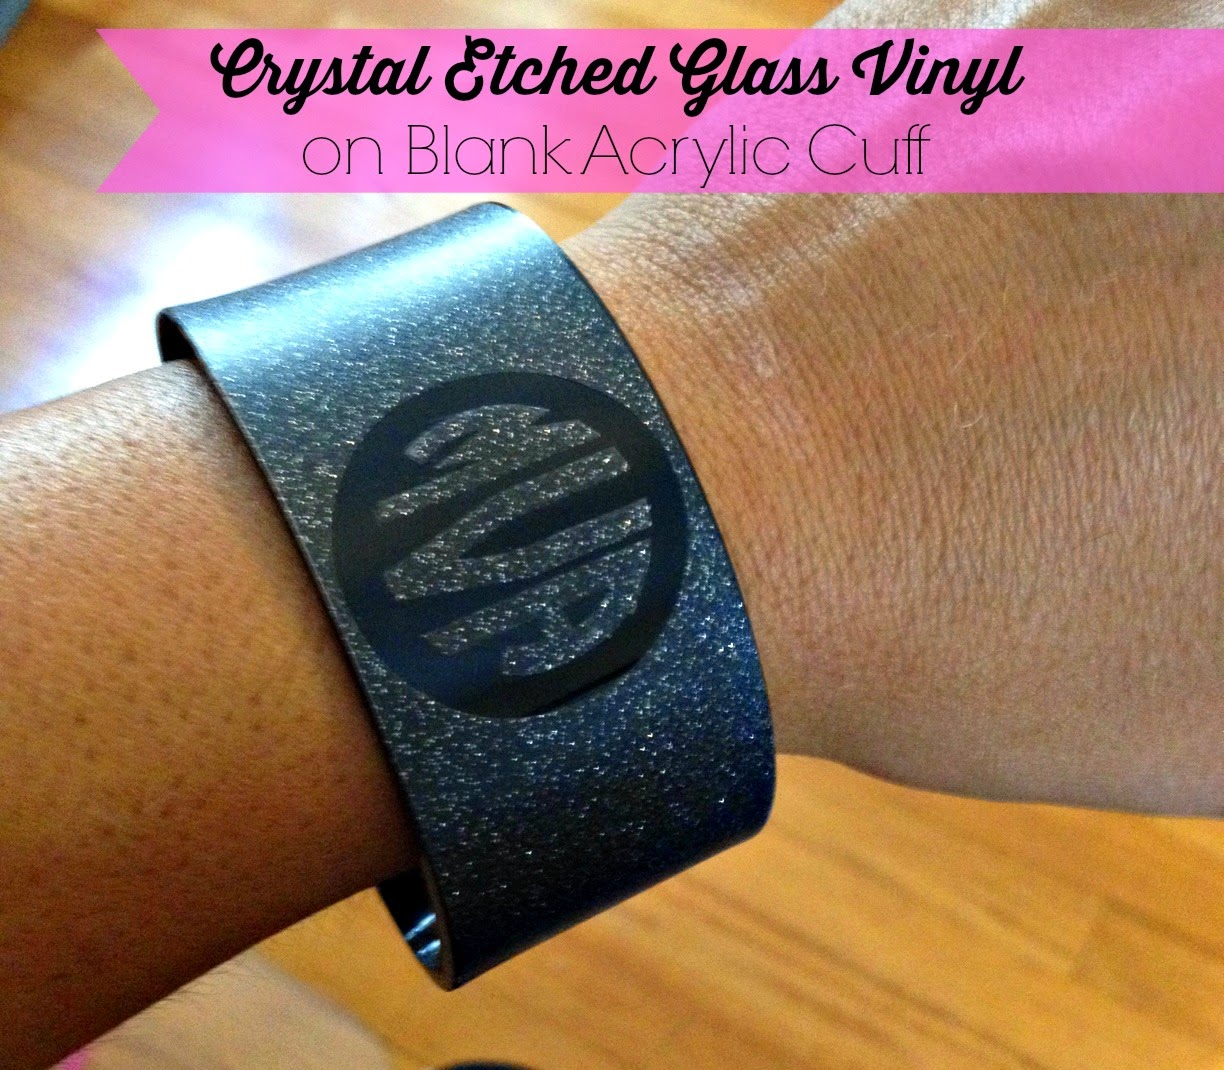 Faux etch glass, mirrors, vinyl, Silhouette tutorial, acrylic cuff